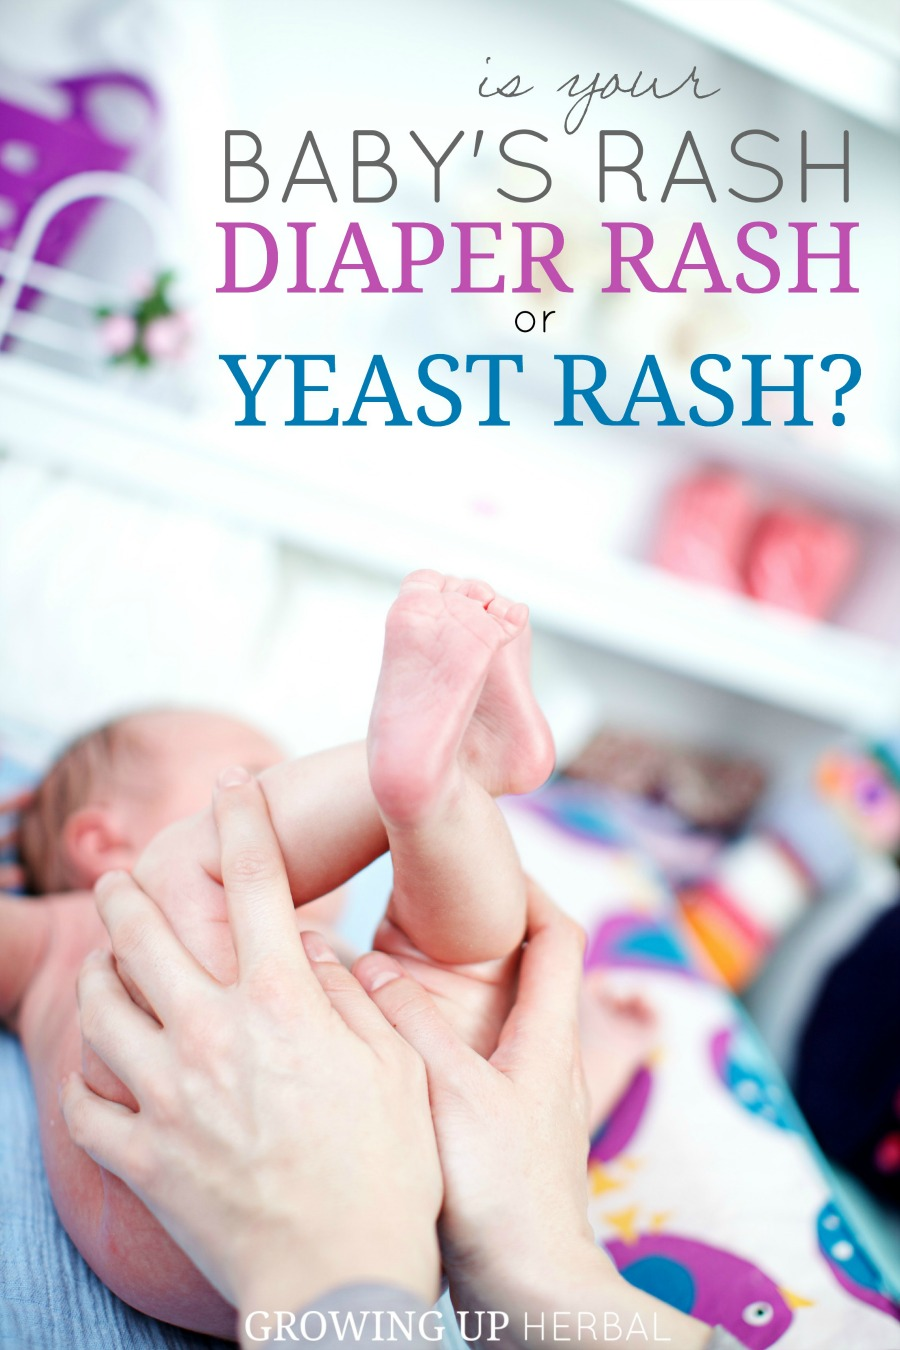 Is Your Baby's Rash Diaper Rash Or Yeast Rash? | Growing Up Herbal | Learn how to tell if your baby's rash is a diaper rash or a yeast rash... plus, how to take care of each one naturally.